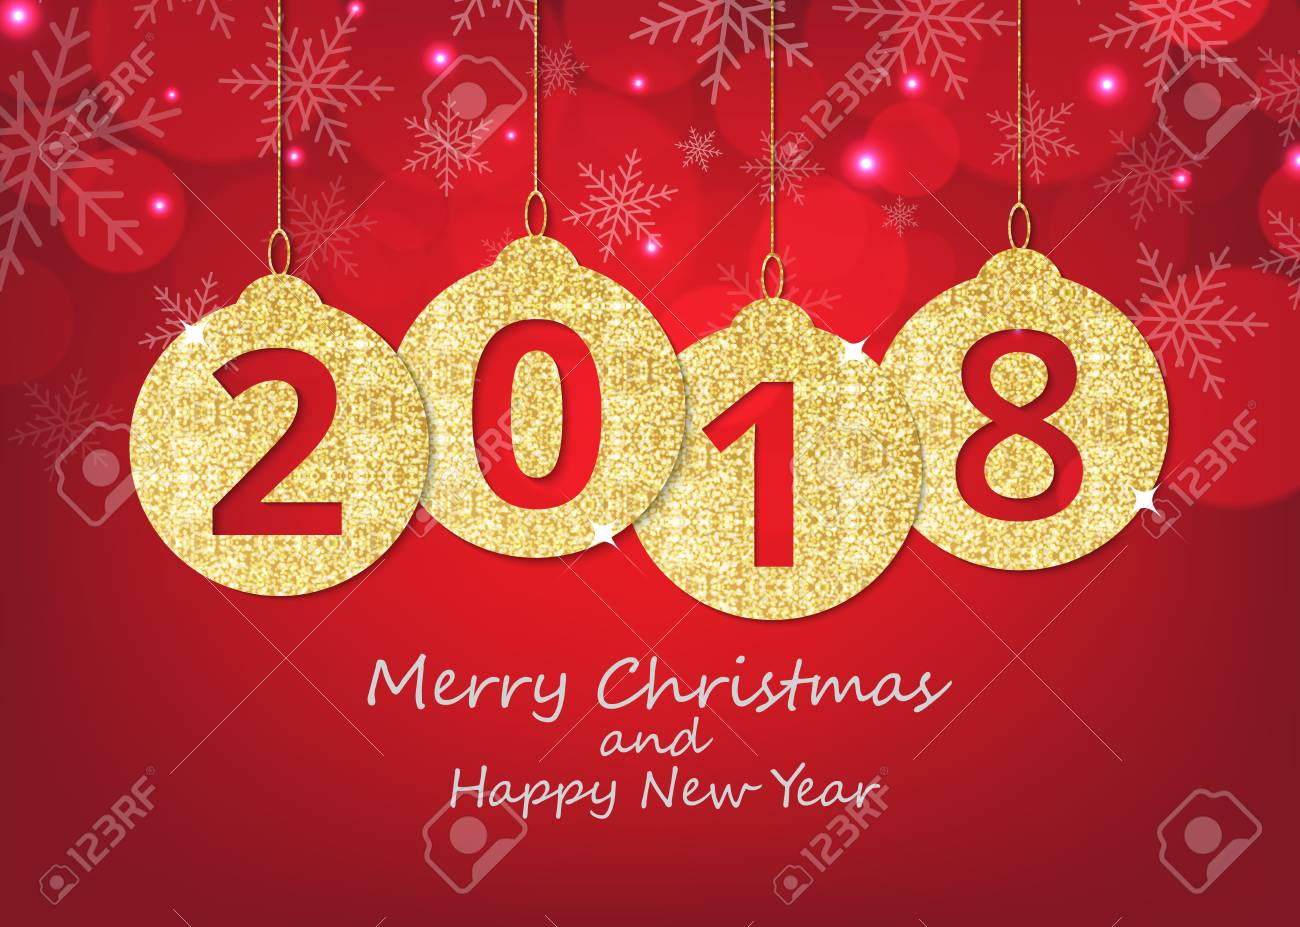 Merry christmas and happy new year hanging 2018 number glitter merry christmas and happy new year hanging 2018 number glitter balls on shiny red background kristyandbryce Choice Image